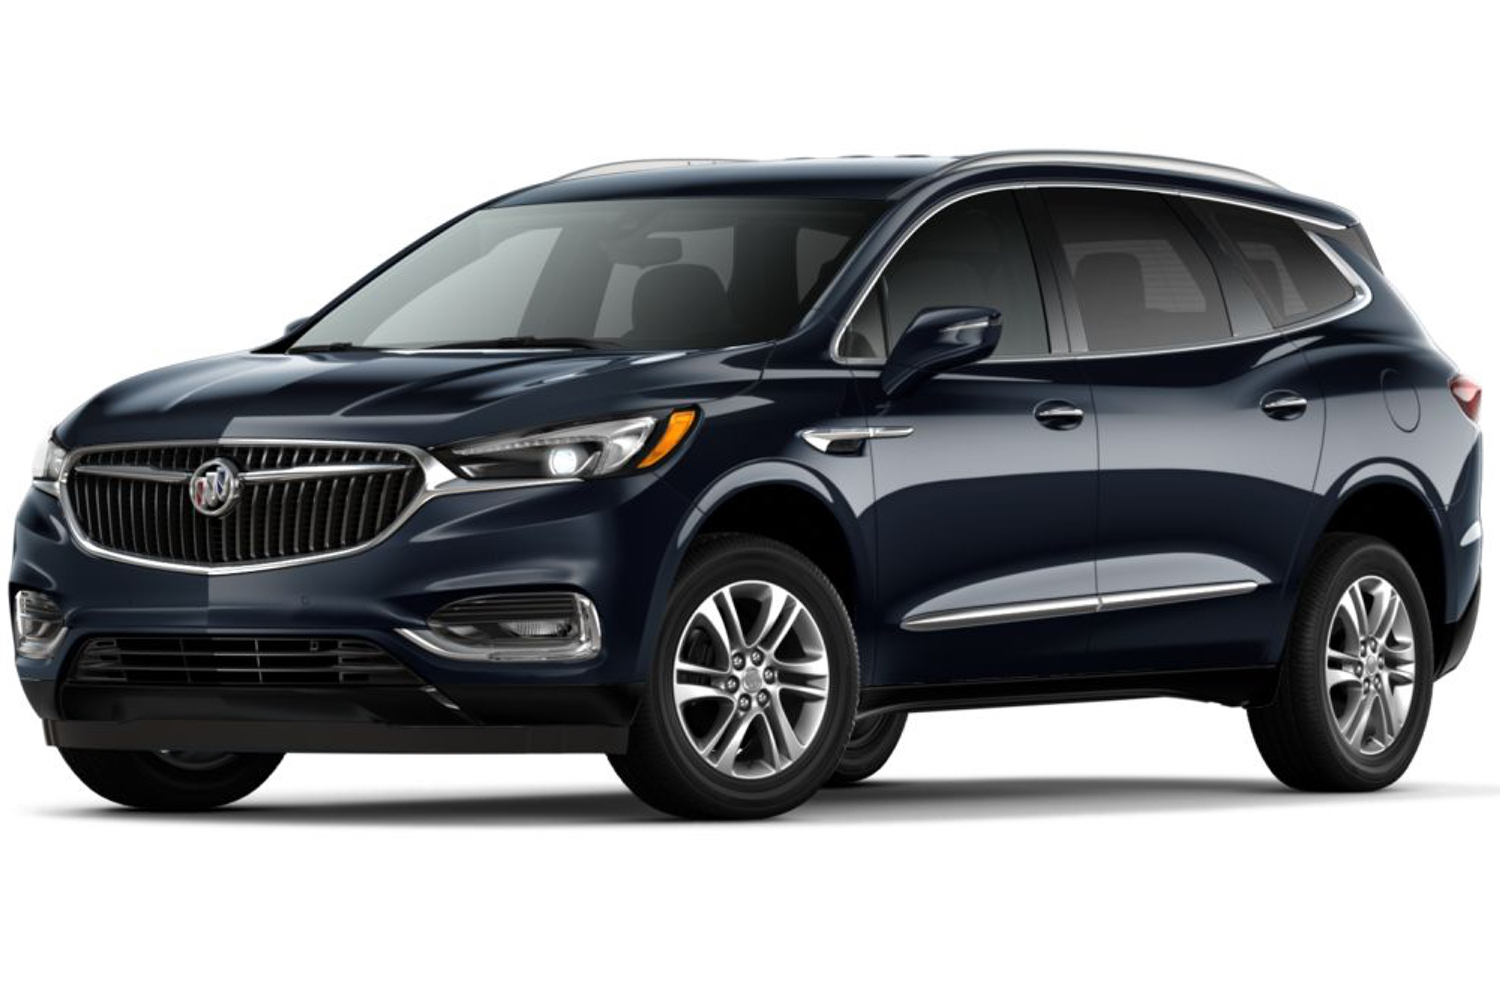 2020 Buick Enclave Gets New Dark Moon Blue Color | Gm Authority New 2022 Buick Enclave Discounts, Discontinued, Exterior Colors